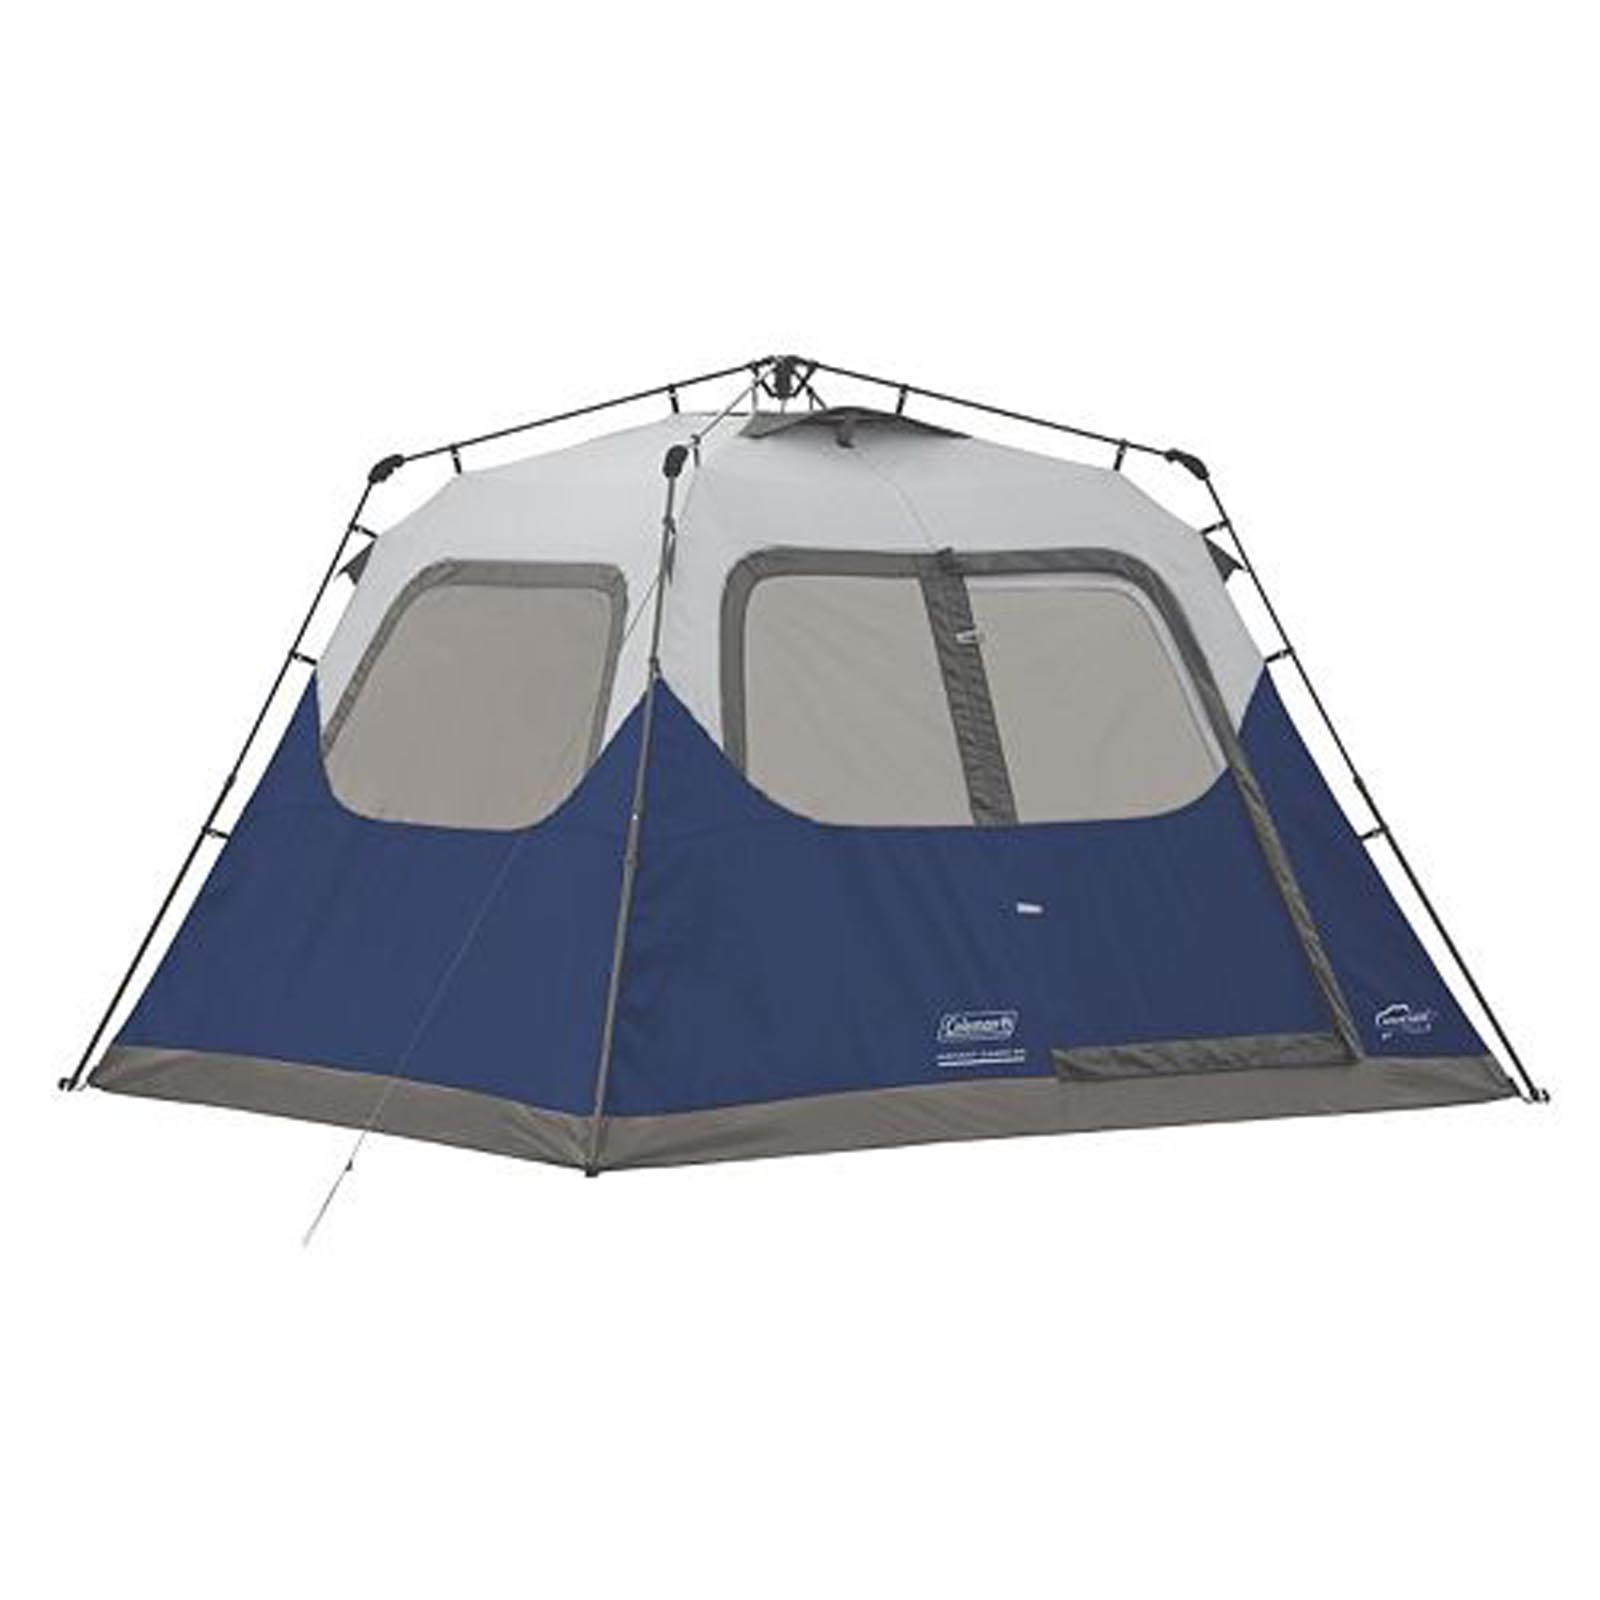 Coleman 6-Person 10u0027 x 9u0027 Instant Cabin Family C&ing Tent w/ Built-In Rainfly - Walmart.com  sc 1 st  Walmart : north ridge tents - memphite.com